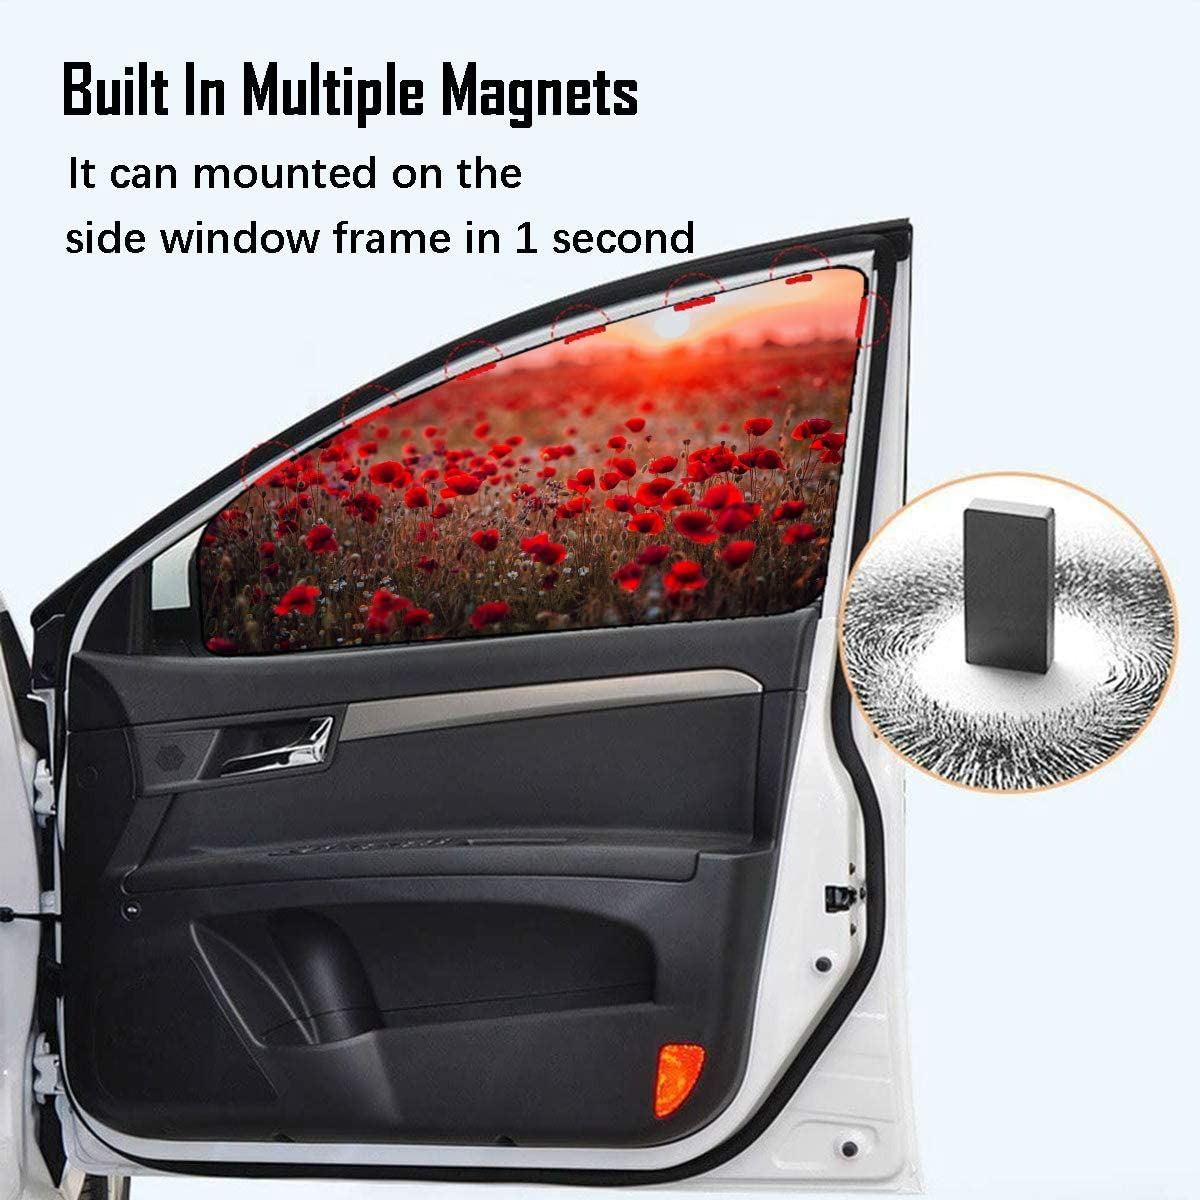 4 Pcs Car Windshield Sunshade Foldable Colorful Wild Flower Field Red Poppies Sunset Funny Car Sun Shade For Windshield Magnetic Curtain Bright Sunlight And Uv Rays Protection For Your Child A Heat